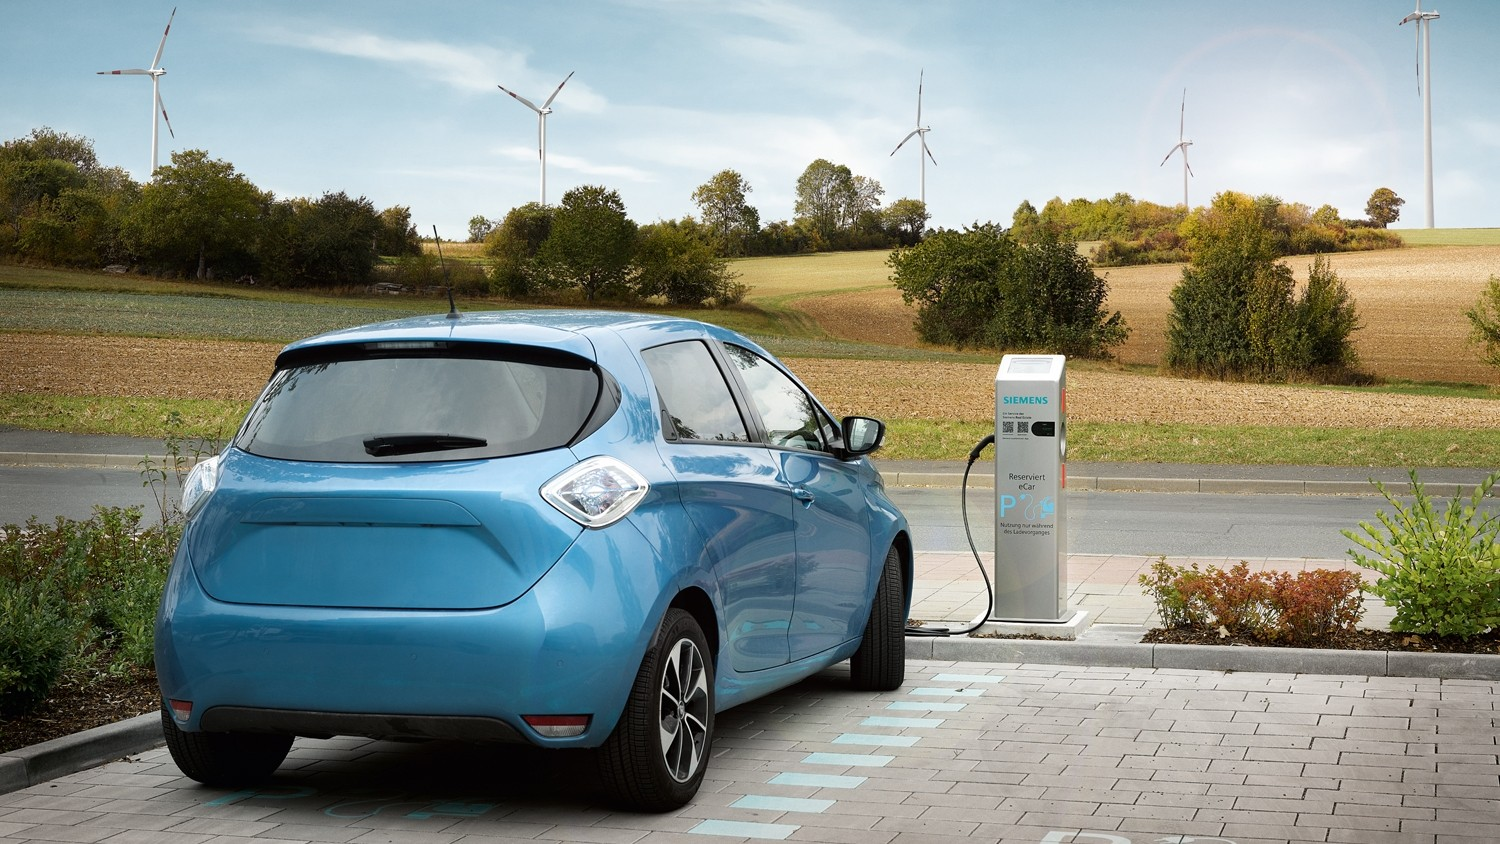 Electric vehicle (EV) charging | Components | Siemens